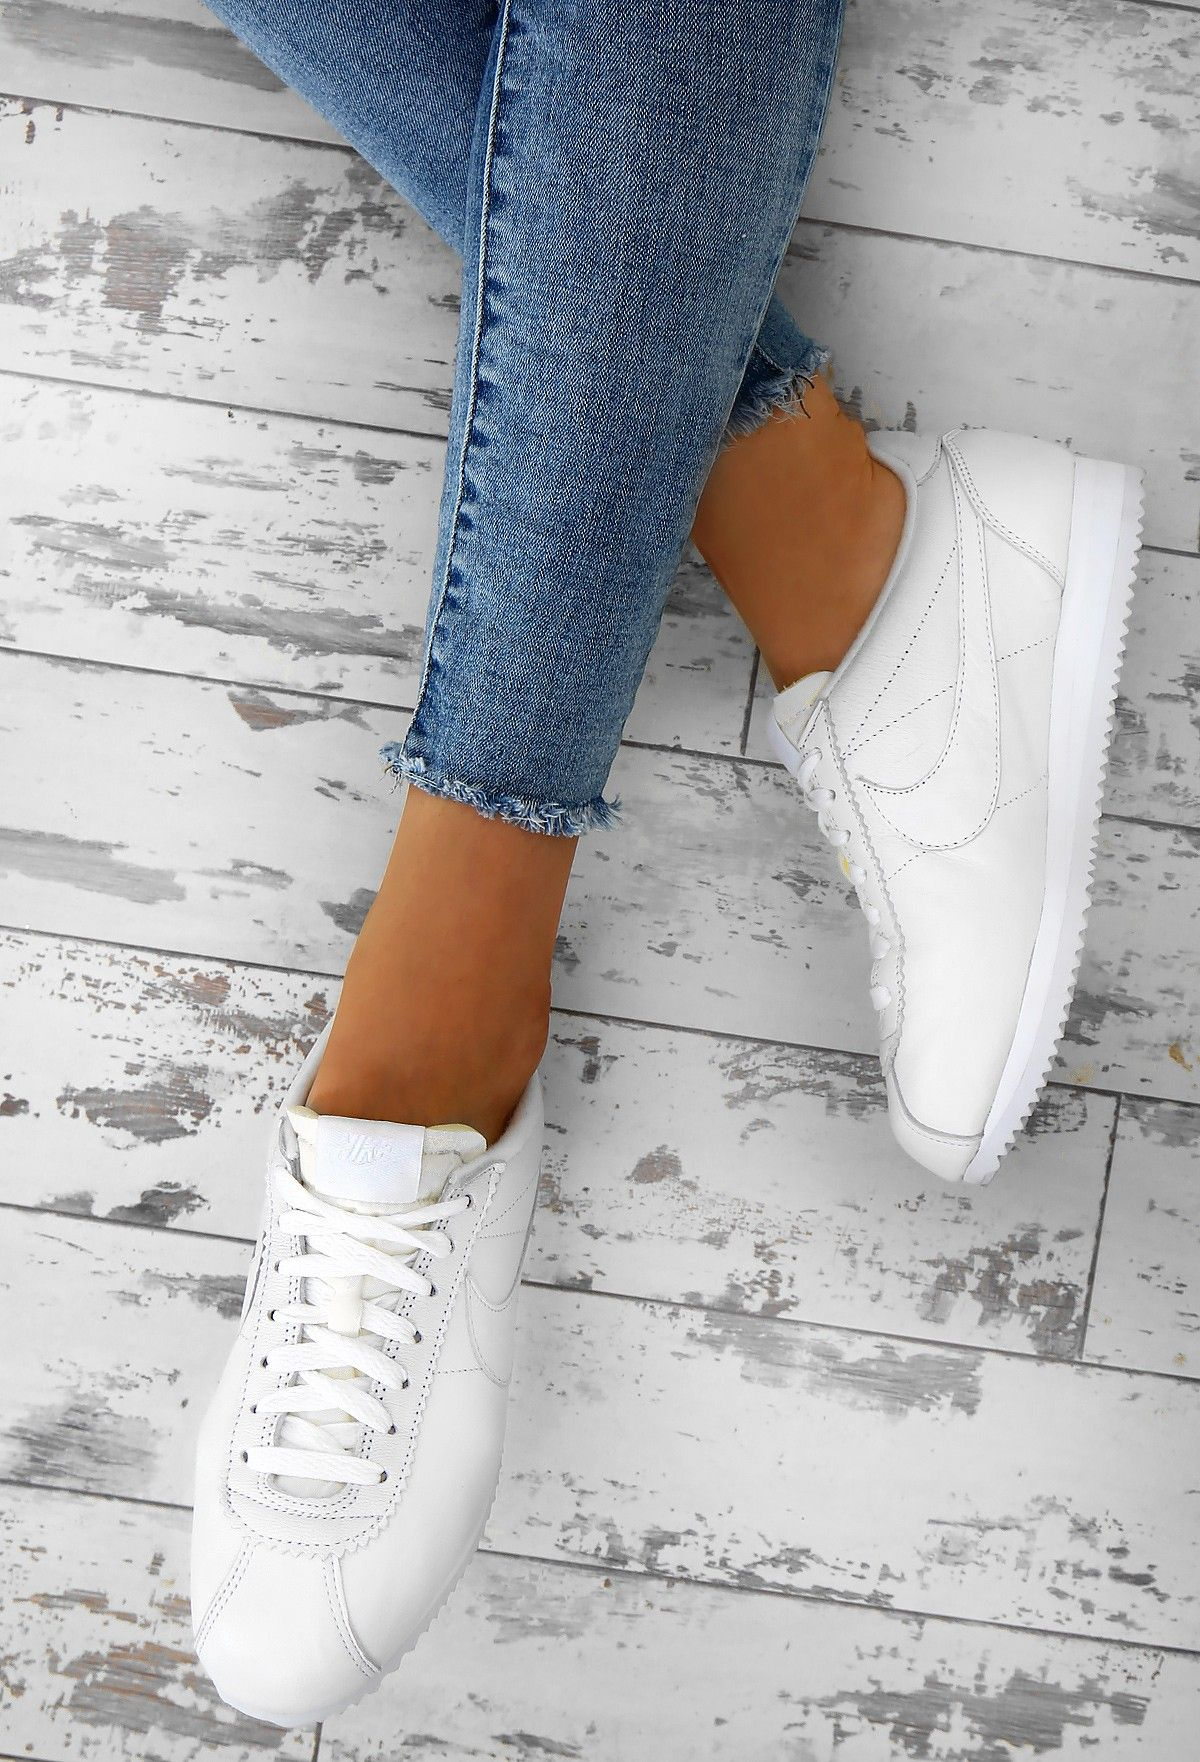 Nike Classic Cortez White Leather Trainers , UK 3 in 2020